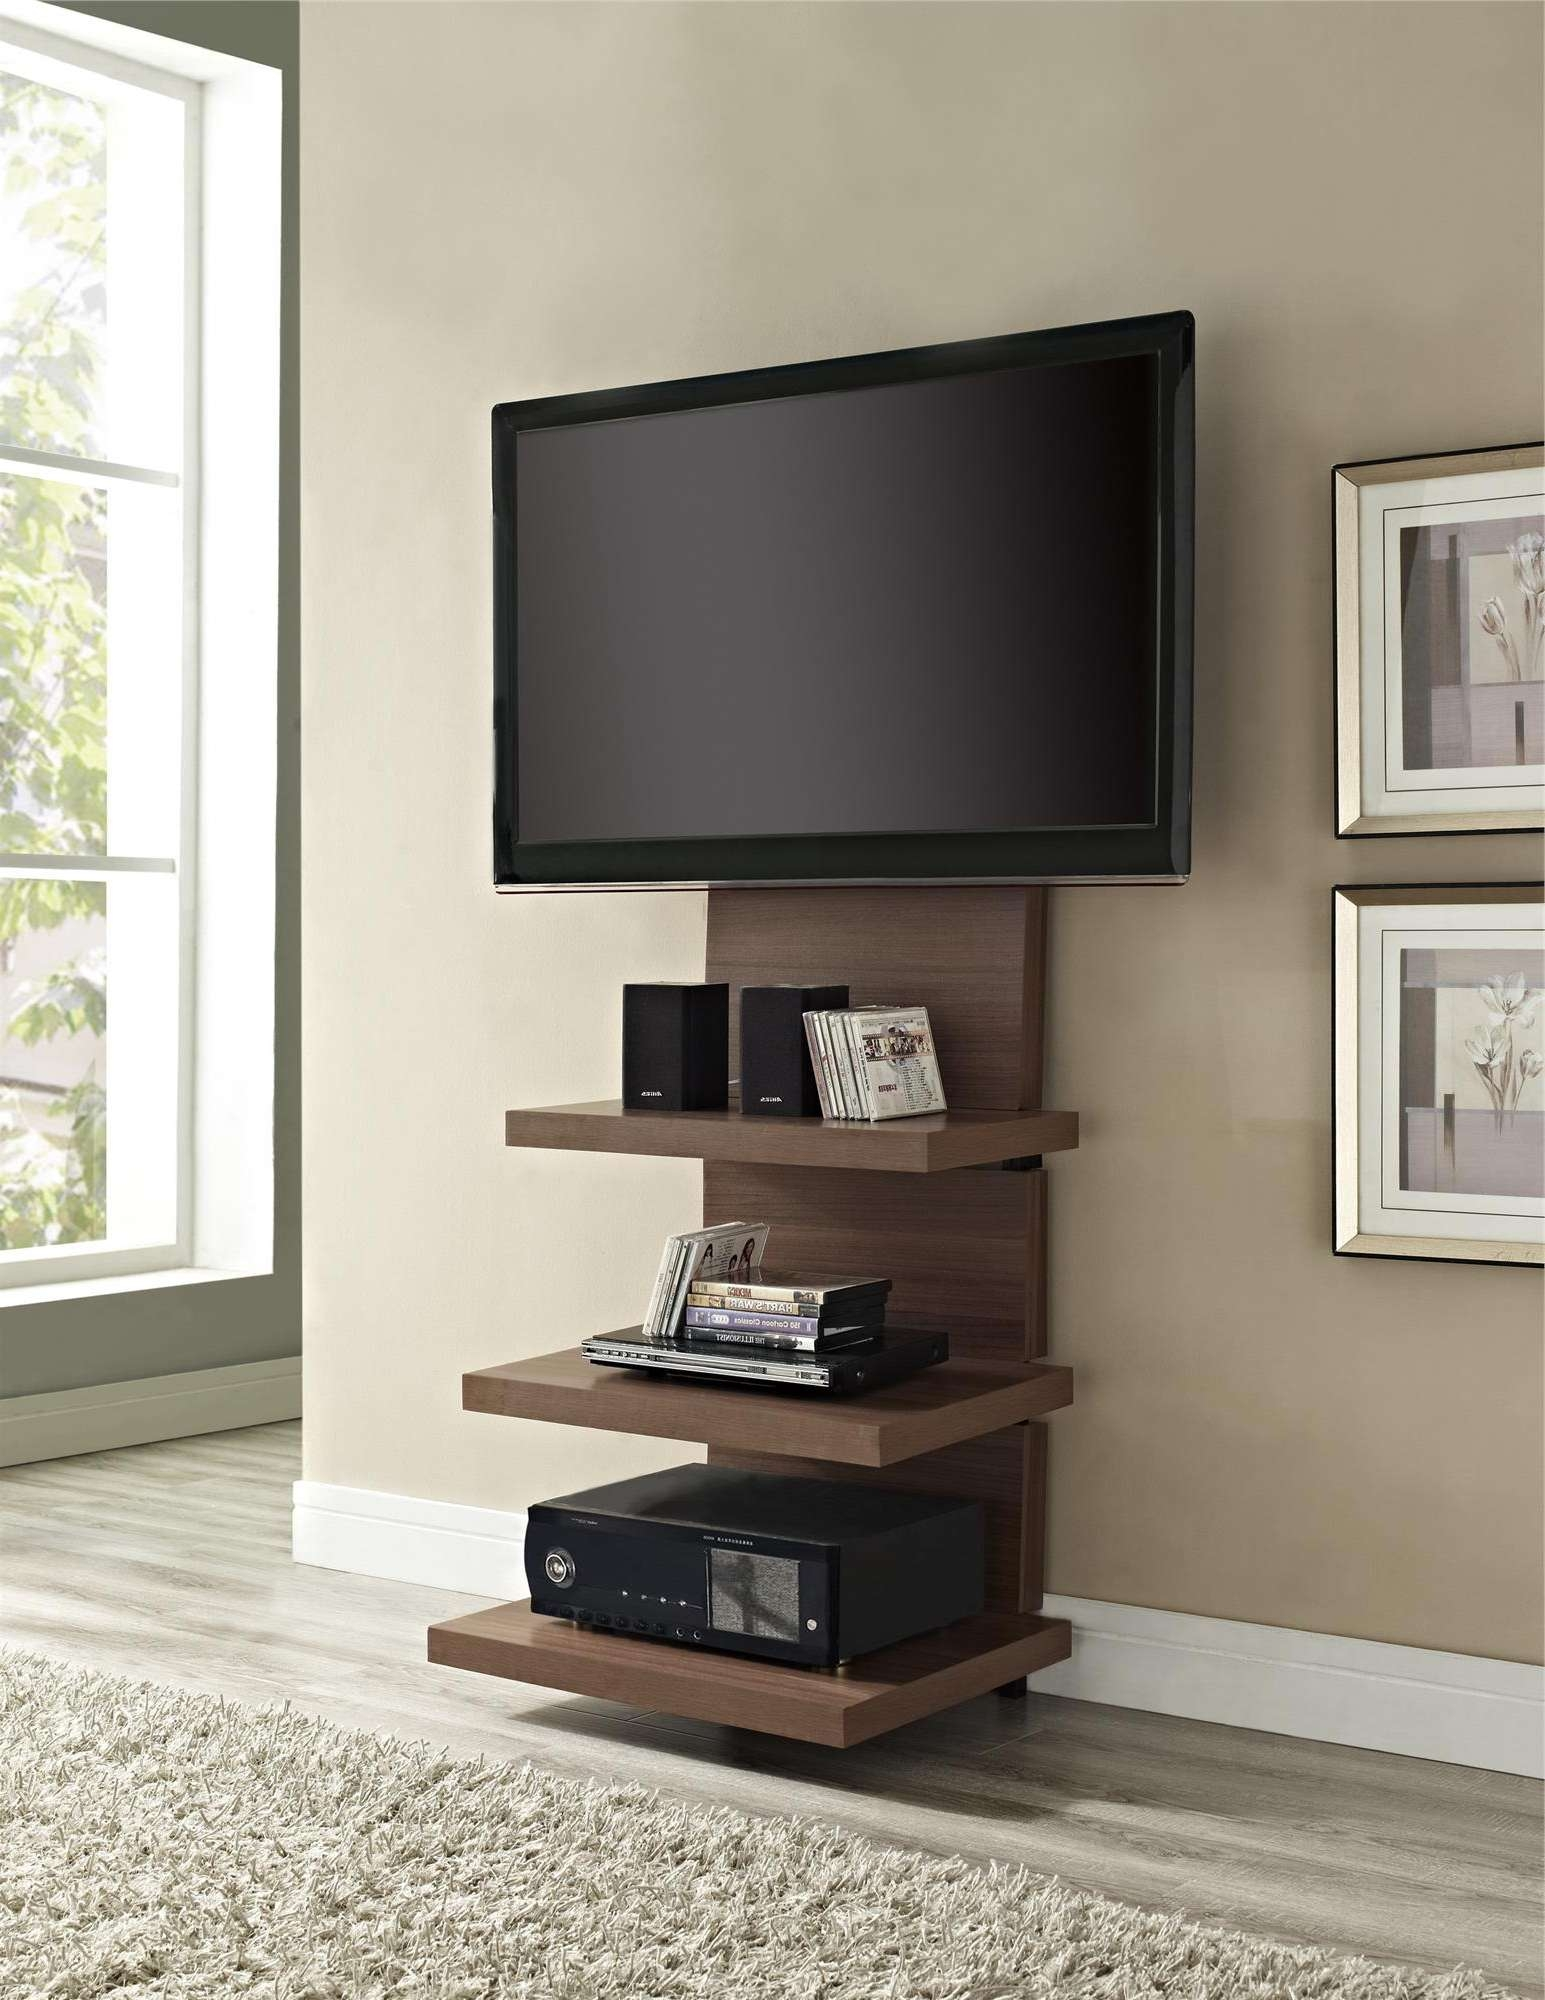 Tall Wood Wall Mounted Tv Stand With Shelves And Mount For Flat For Cheap Tall Tv Stands For Flat Screens (View 14 of 20)